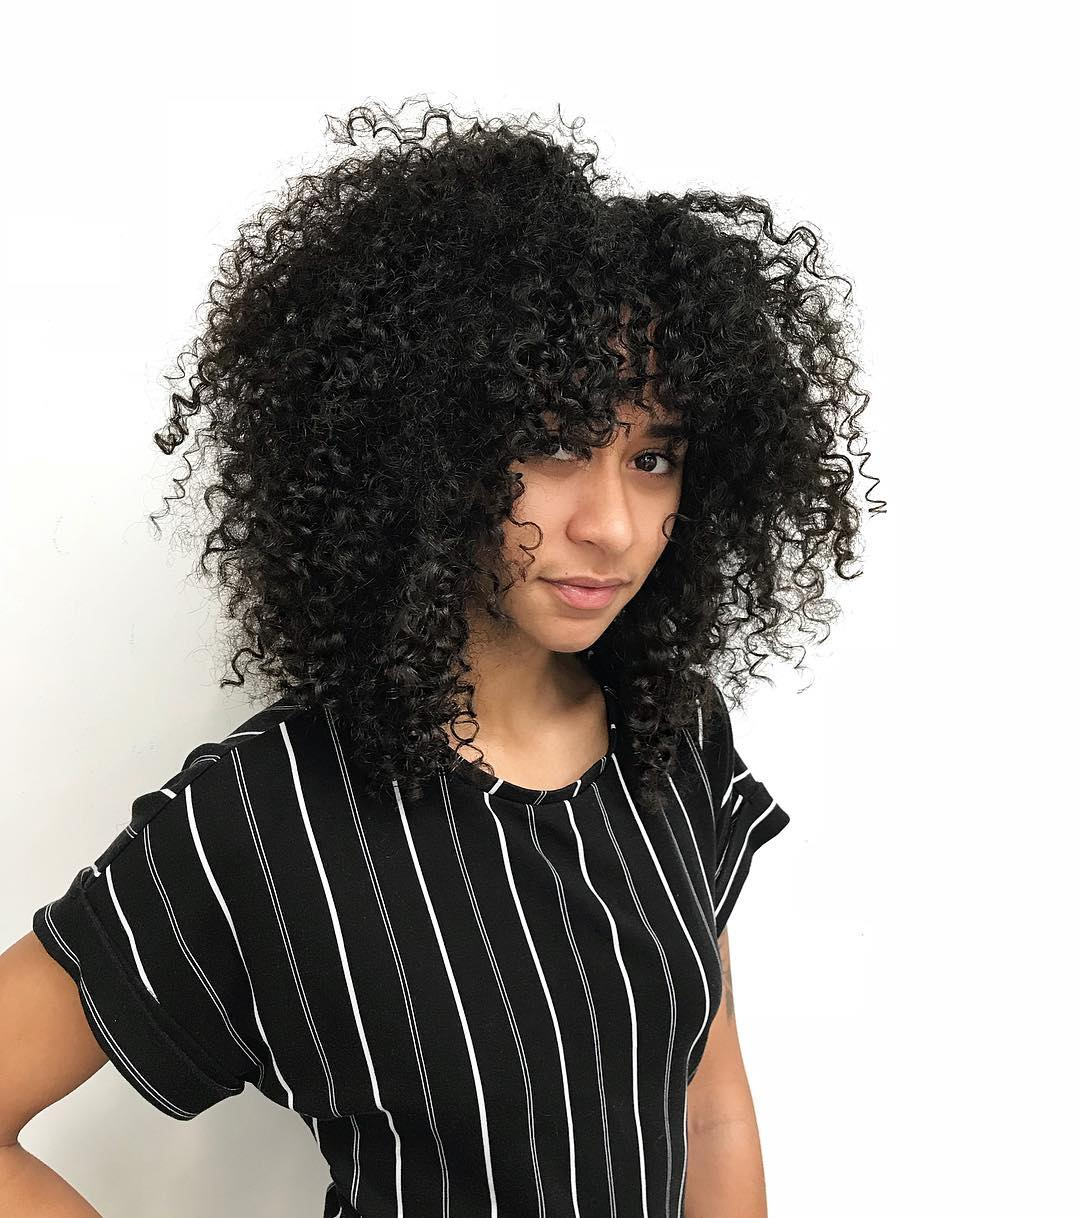 Face Framing Fringe Cut with Natural Curly Texture and Volume on Black Hair Long Trendy Afro Hairstyle